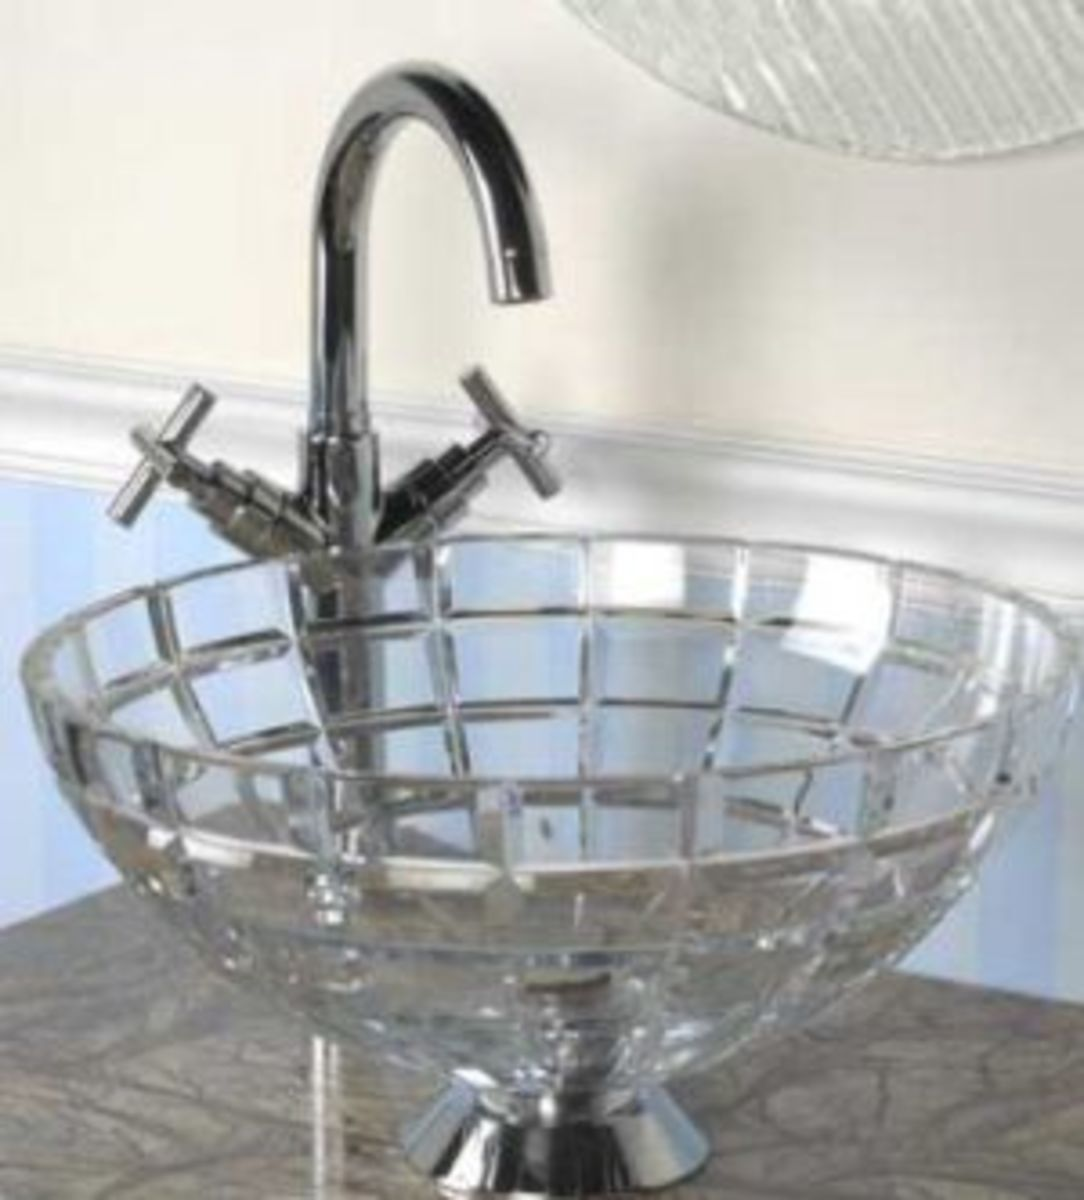 A elegant clear bathroom basin that appears to be cut glass with a two handle faucet.A clean bathroom sink basin could be visually clean and yet not be sanitized.